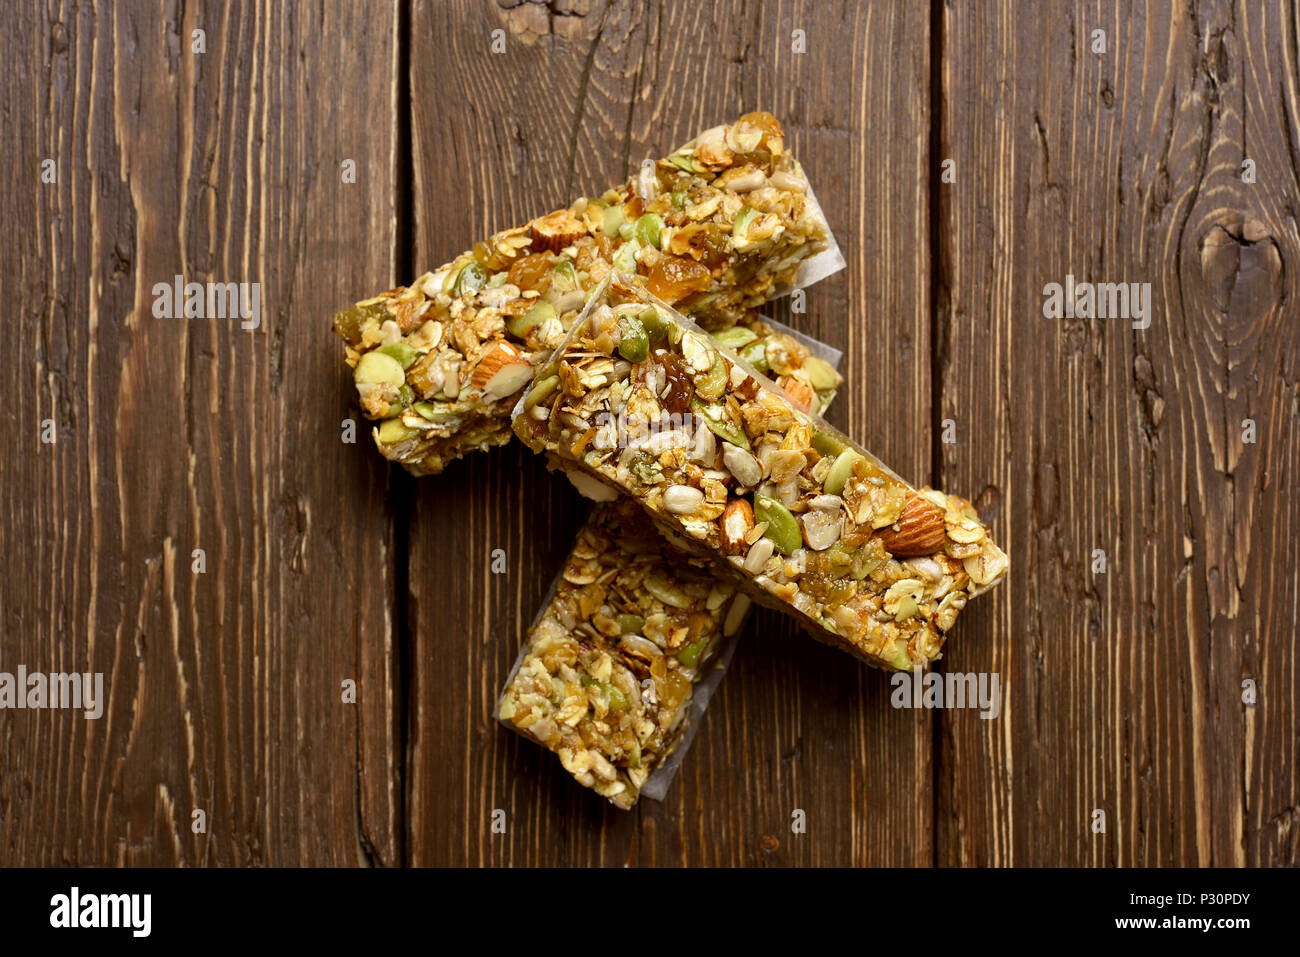 Granola bars on wooden background. Top view, flat lay - Stock Image